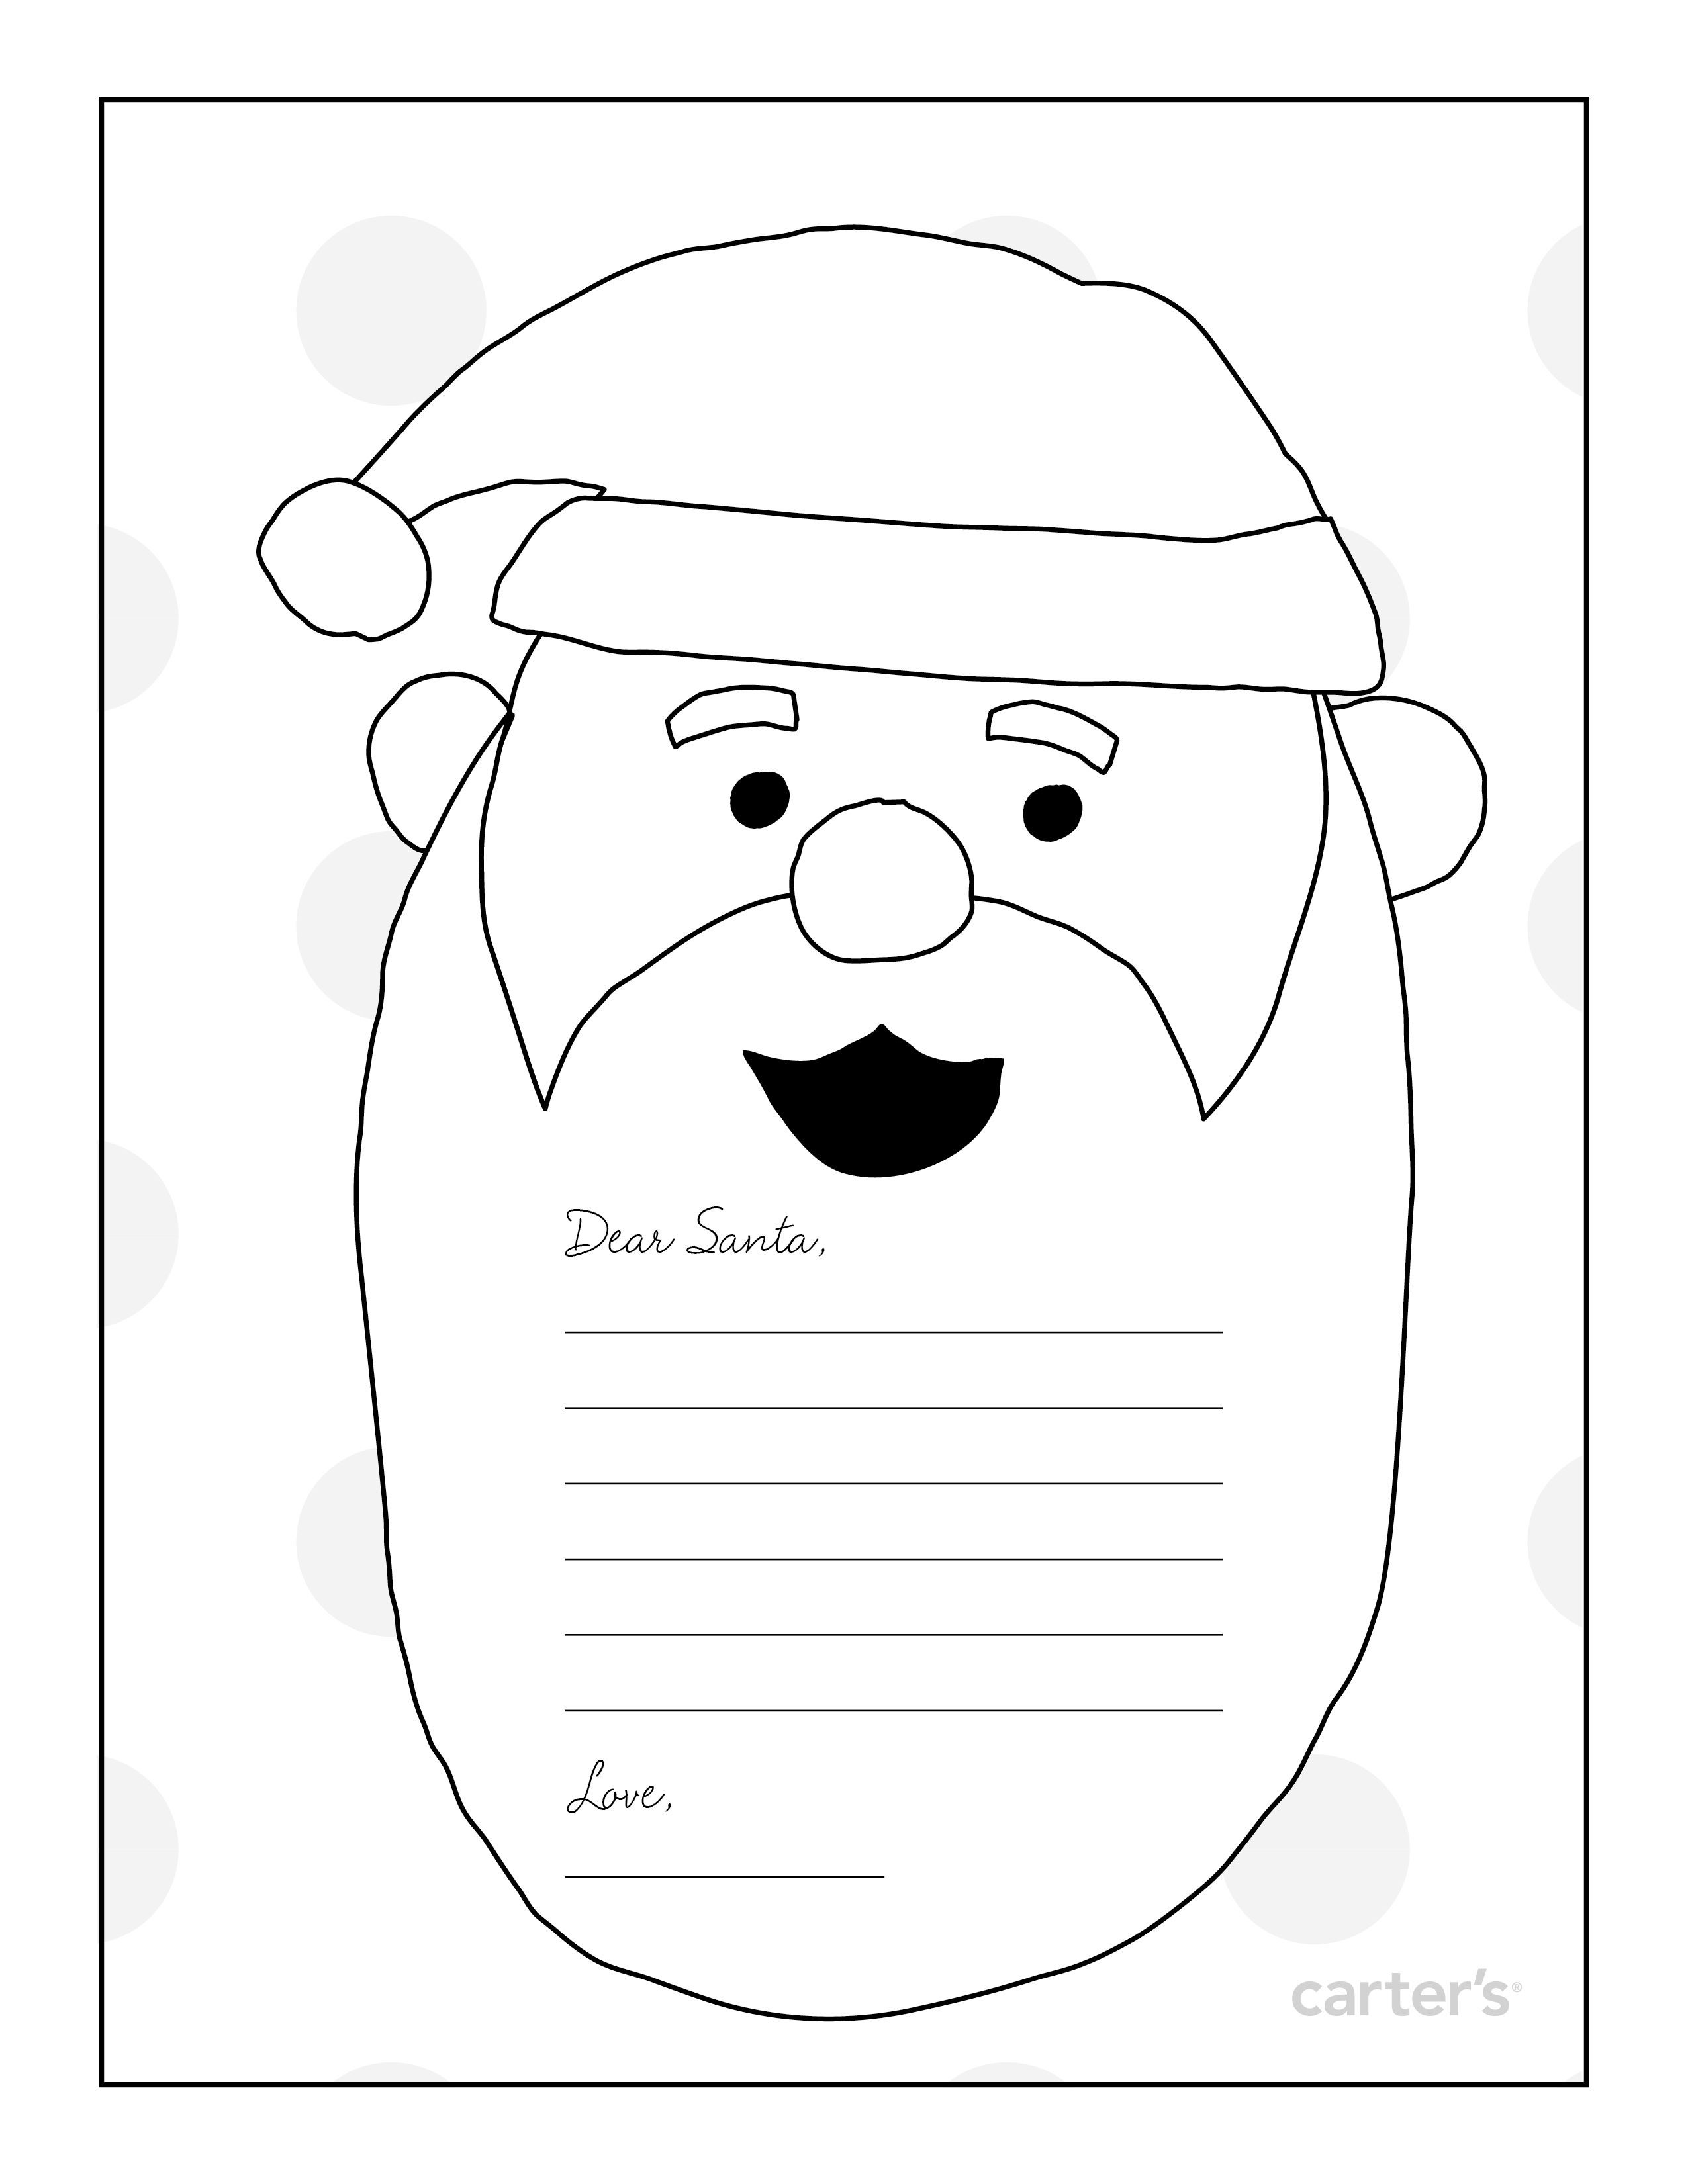 Santa Letter Coloring Sheet With ColoringPage Christmas Pinterest Colors Unusual